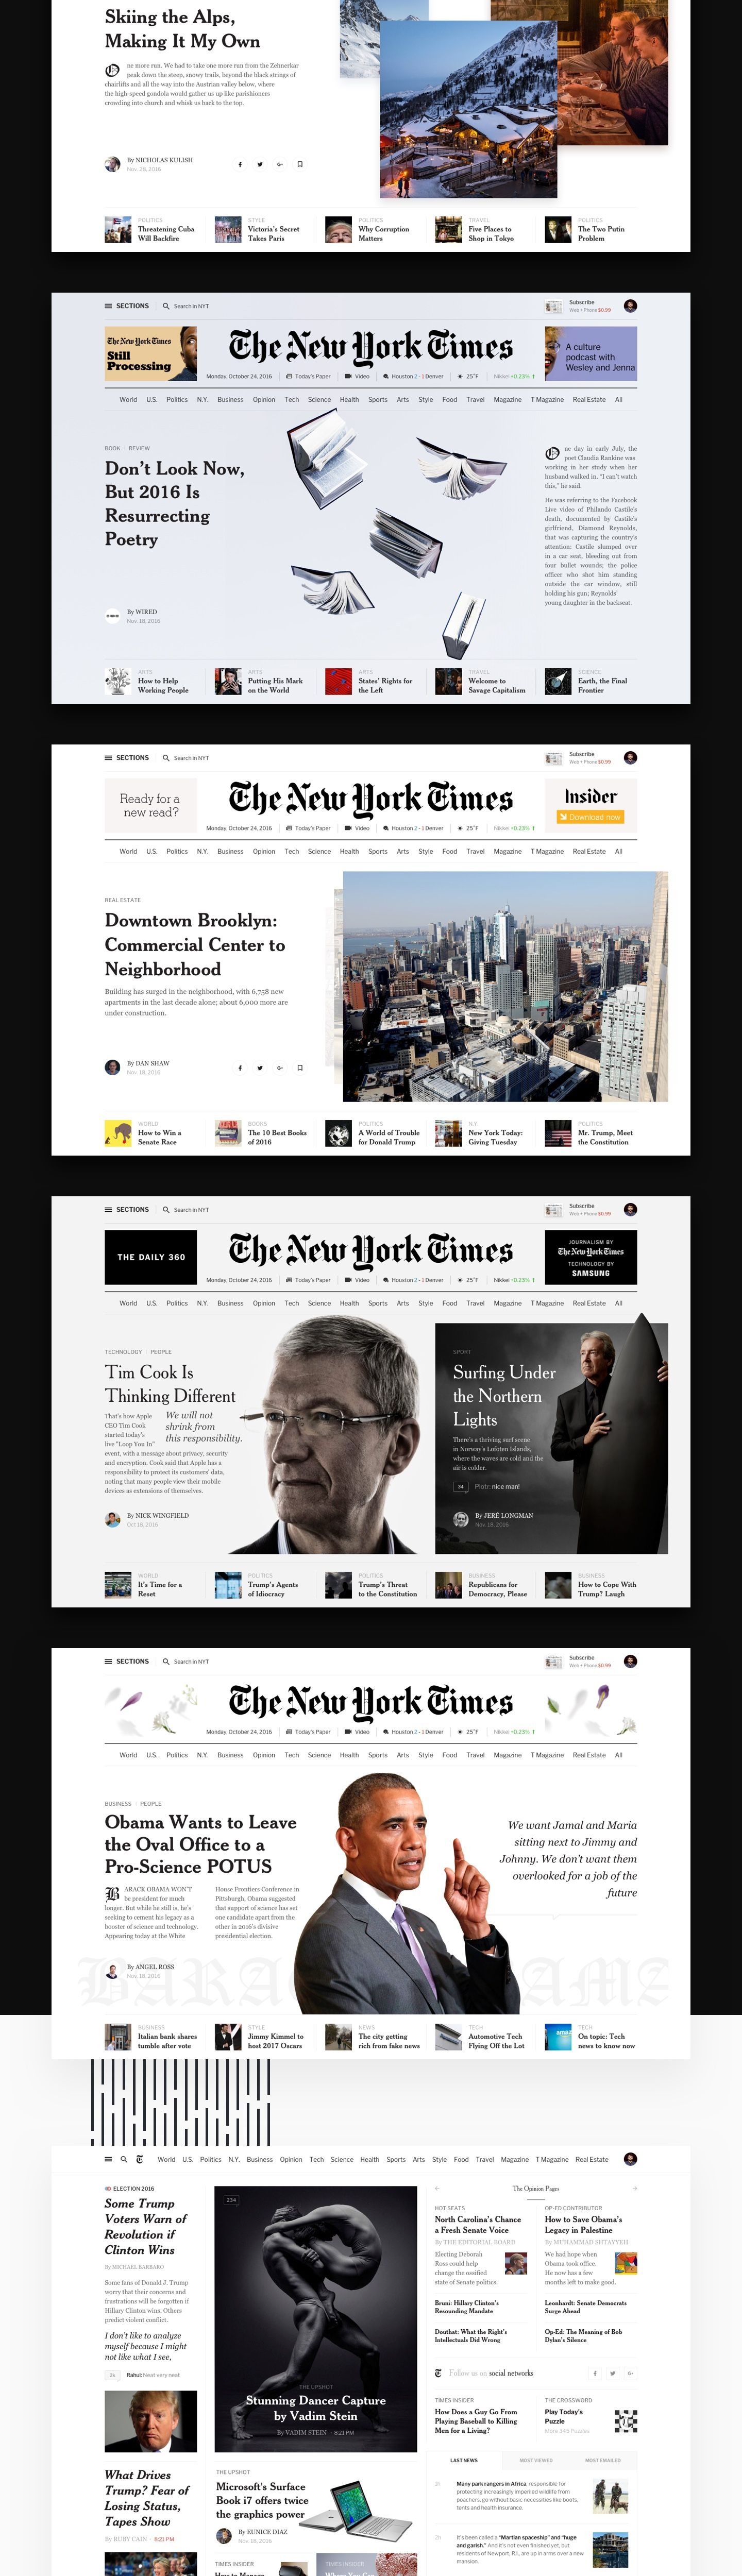 Editorial Design The New York Times Redesign Concept Editorial Design News Web Design Web Layout Design